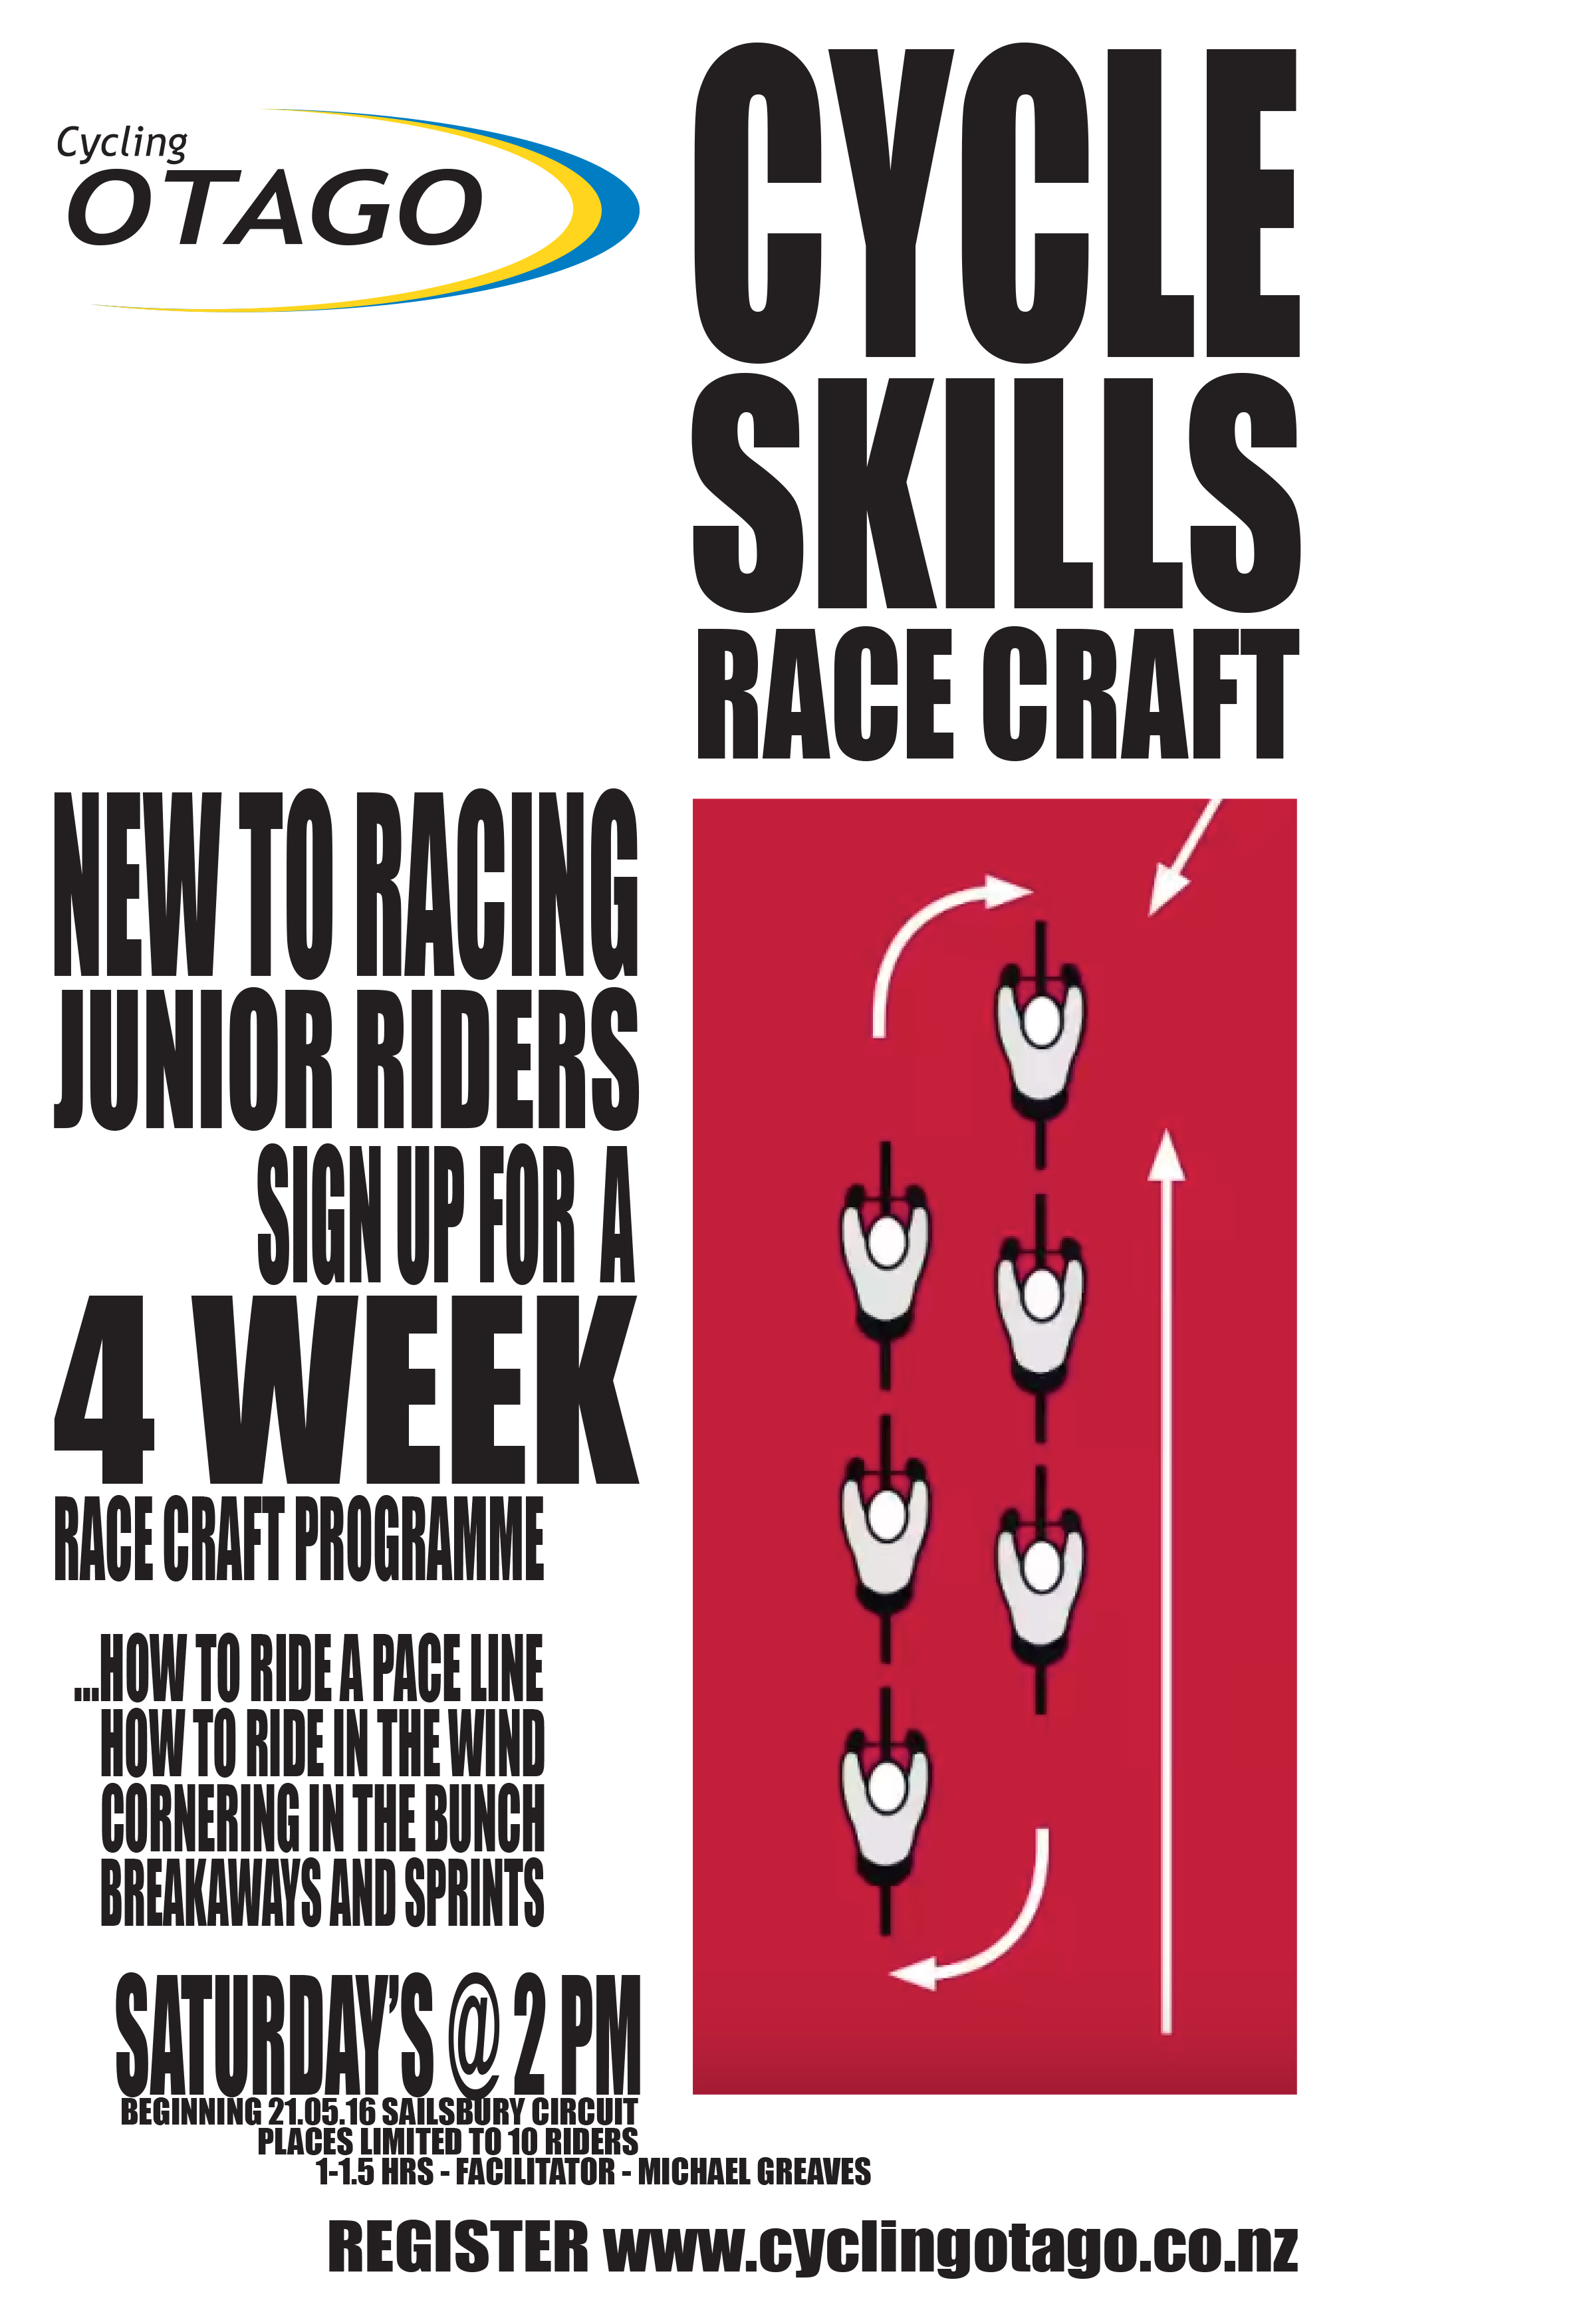 SATURDAY RACE CRAFT SESSIONS